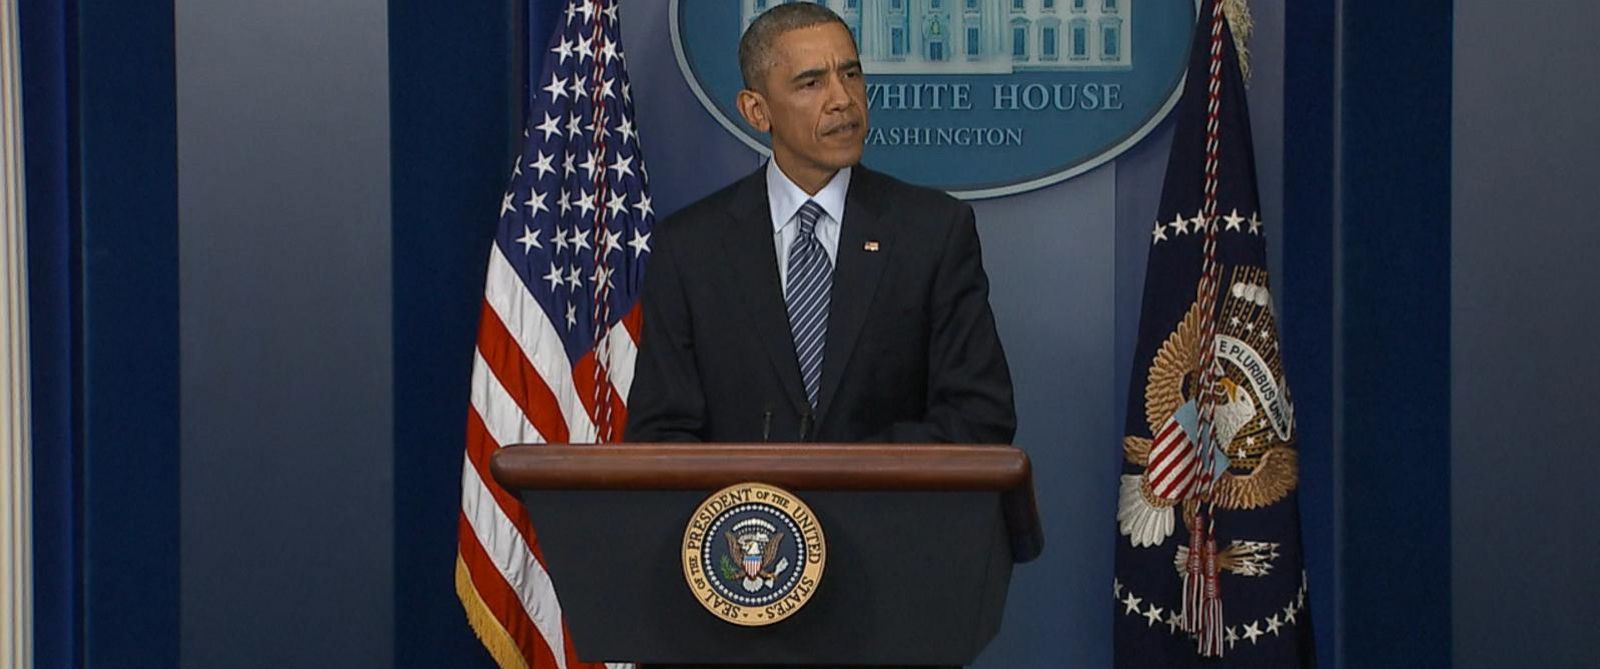 PHOTO: President Barack Obama speaks at a press conference